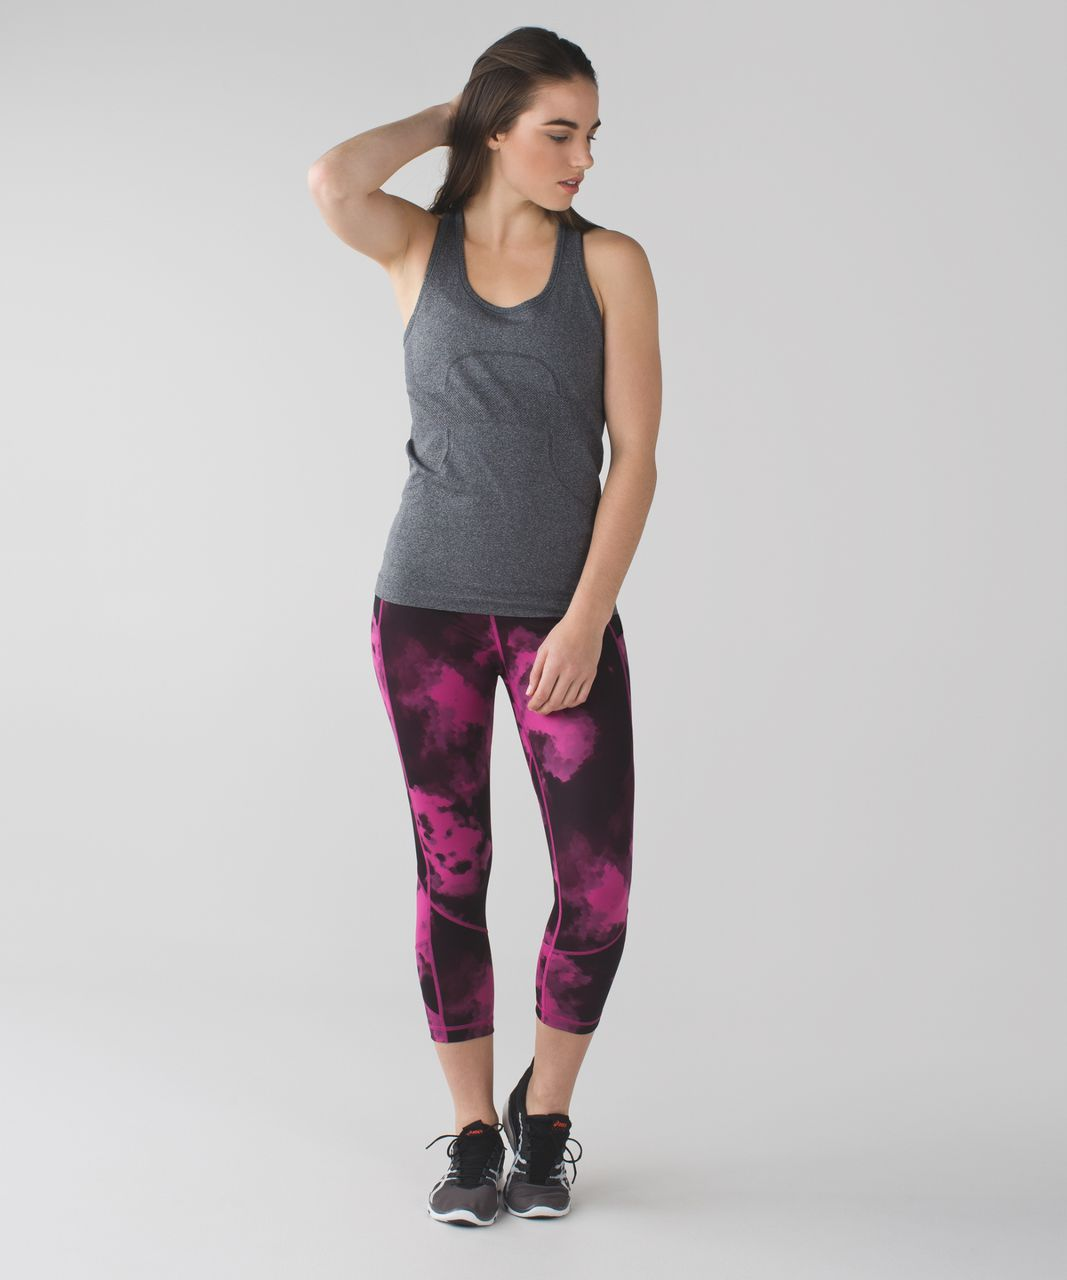 Lululemon Pace Rival Crop *Full-On Luxtreme - Blooming Pixie Raspberry Black / Raspberry